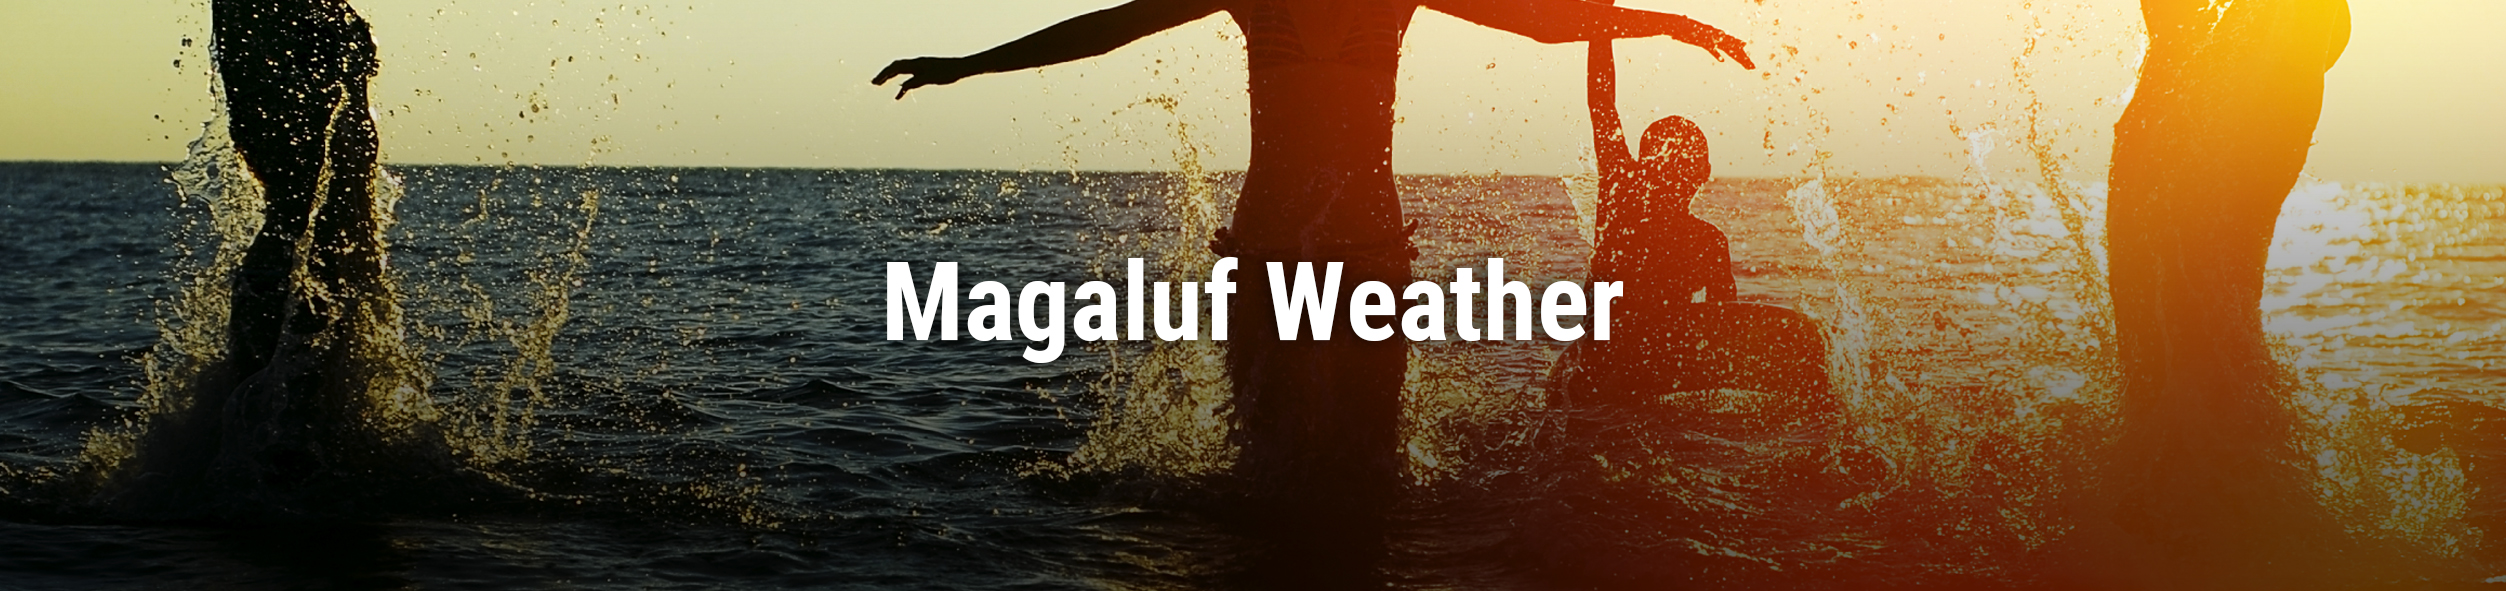 Weather Magaluf